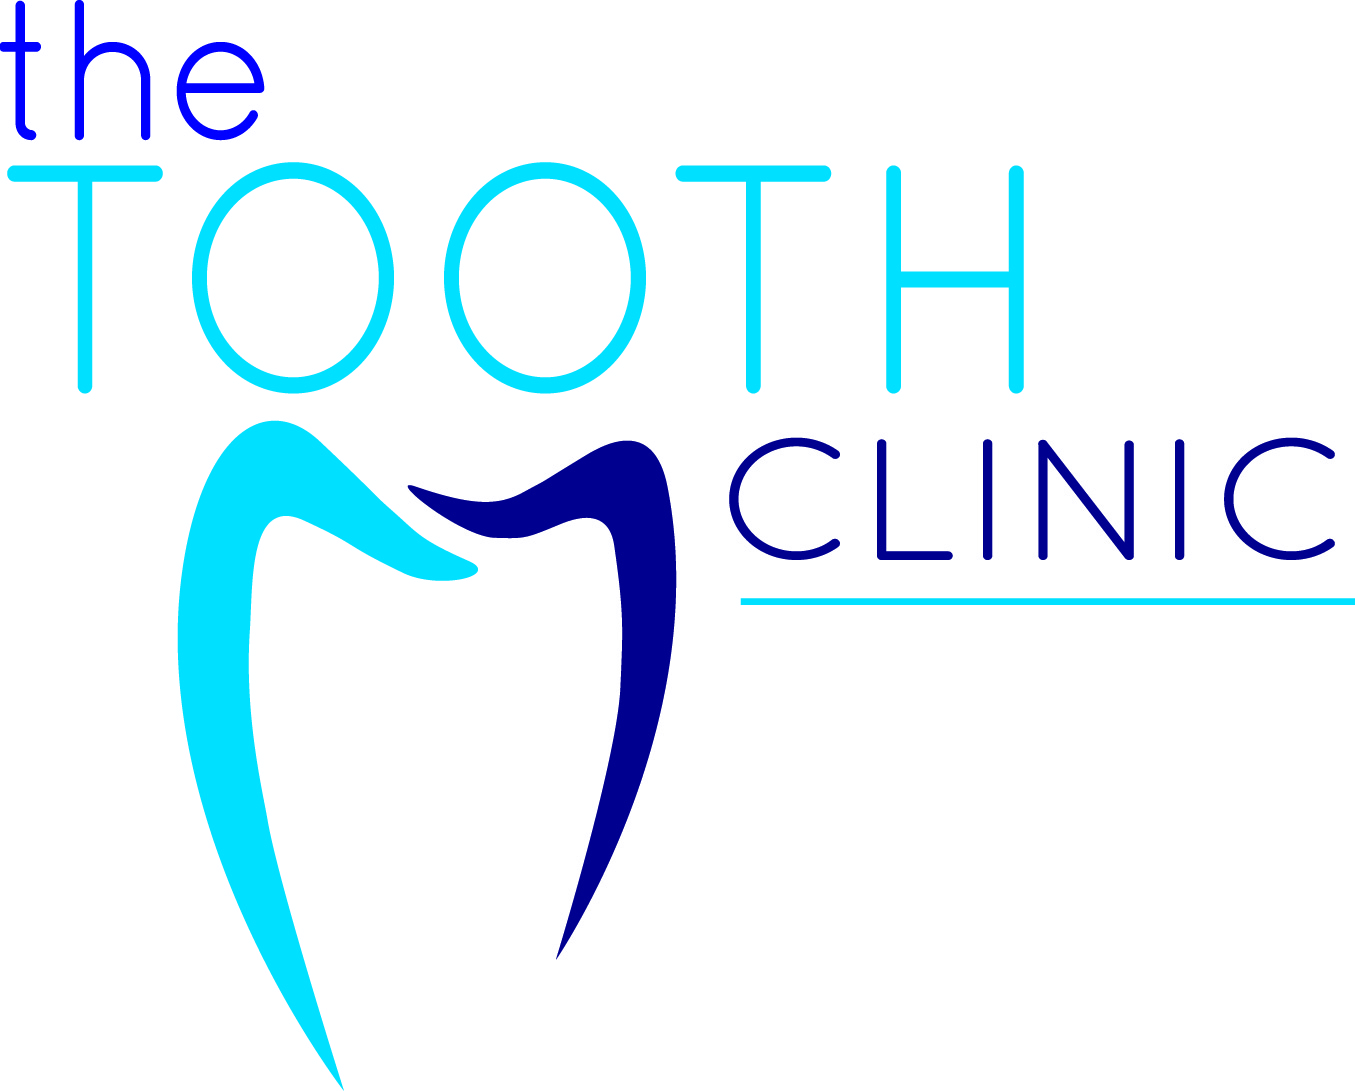 Modern, Professional, Dental Logo Design for the tooth ...